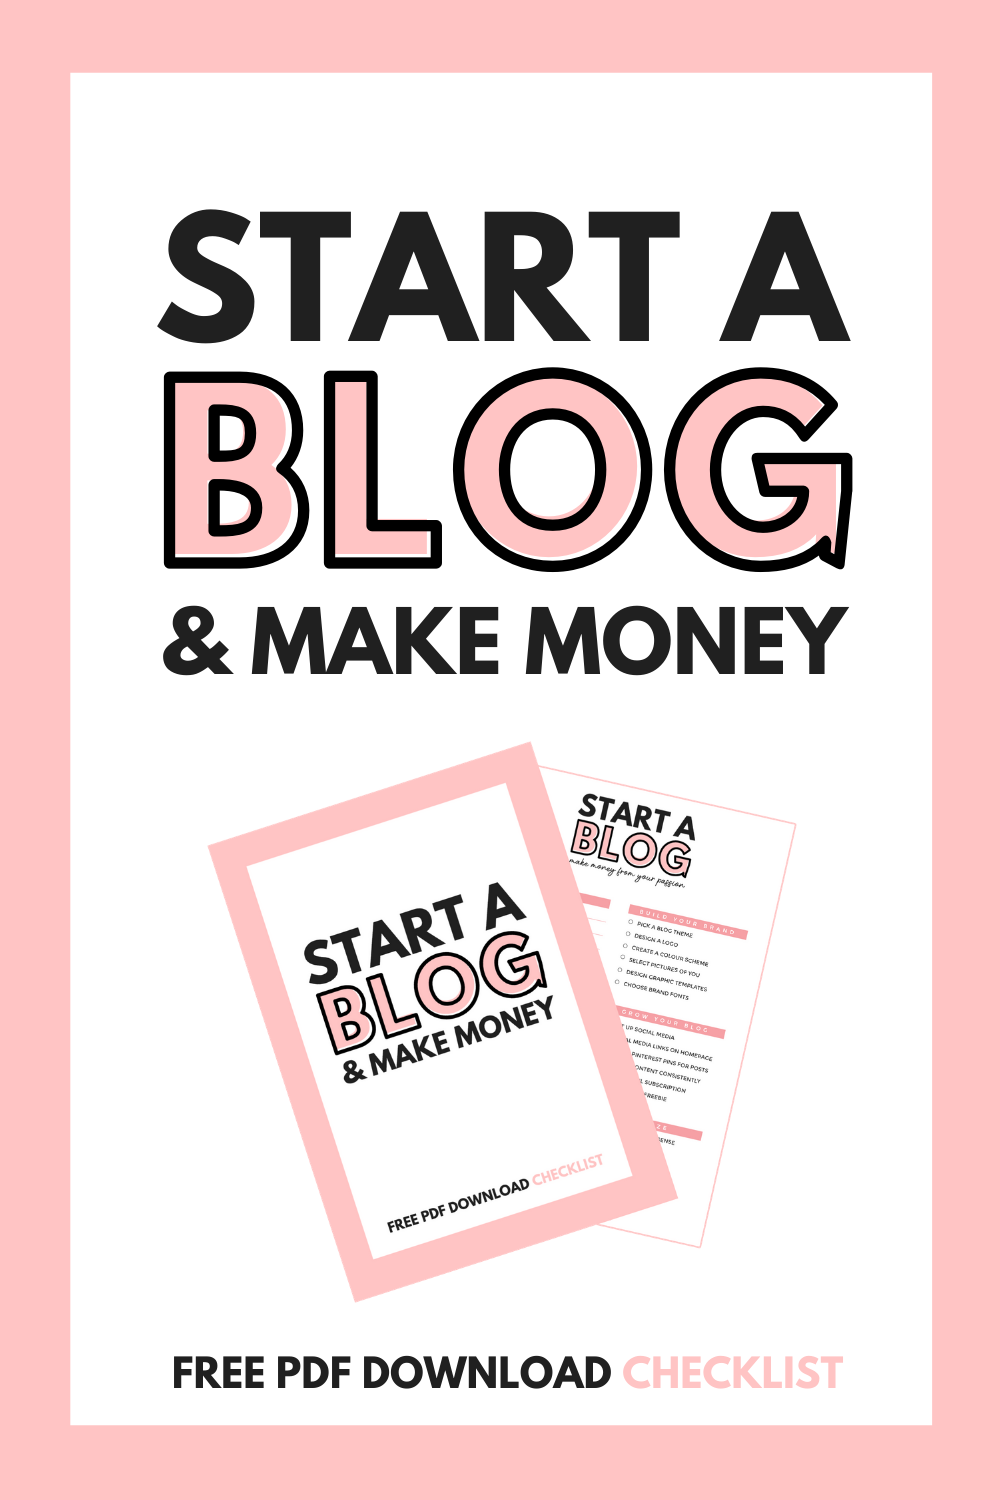 START A BLOG & MAKE MONEY _ FREE PDF DOWNLOAD _ CHECKLIST (1)